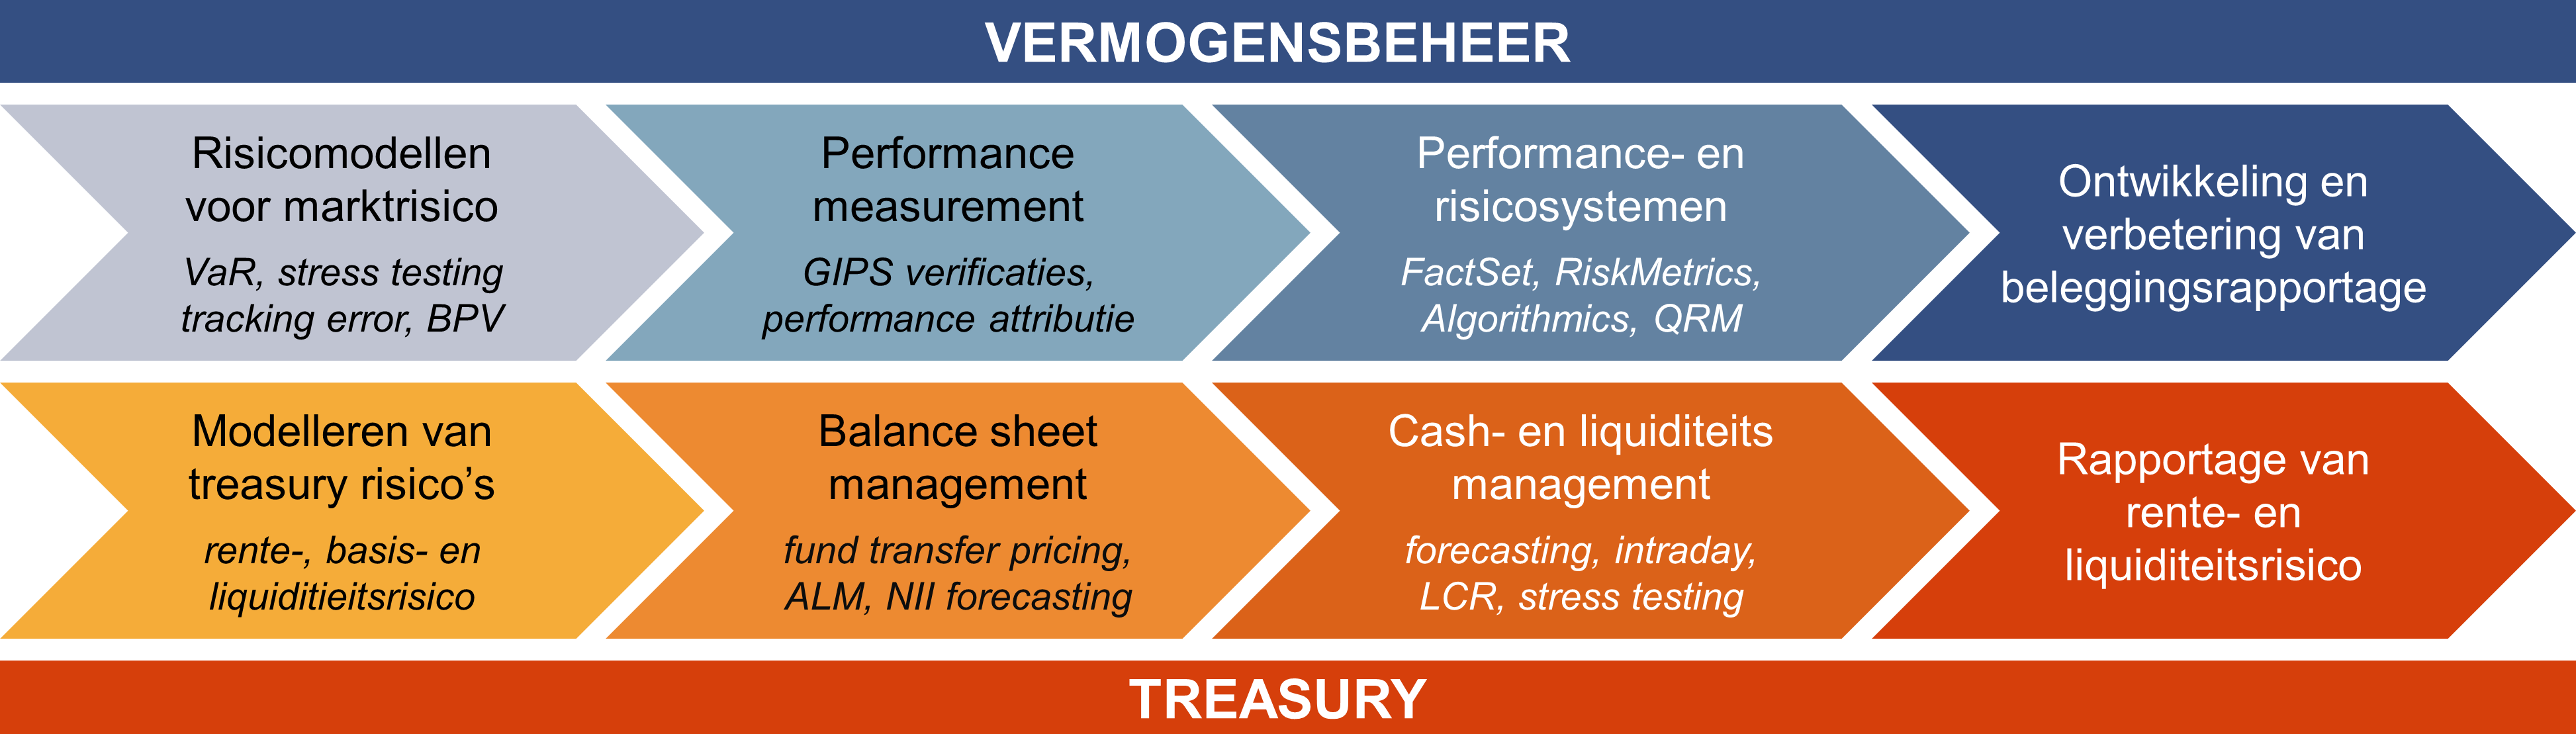 Kennisgebieden David Janssen Vermogensbeheer Risicomodellen voor marktrisico: VaR, stress testing, tracking error, BPV Performance measurement: GIPS verificaties, performance attributie Performance- en risicosystemen: FactSet, RiskMetrics, Algorithmics Ontwikkeling en verbetering van beleggingsrapportage Treasury Modelleren van treasury risico's: rente-, basis- en liquiditieitsrisico Balance sheet management: fund transfer pricing, ALM, balance forecasting Cash- en liquiditeits management: forecasting, intraday, LCR, stress testing Rapportage van rente- en liquiditeitsrisico